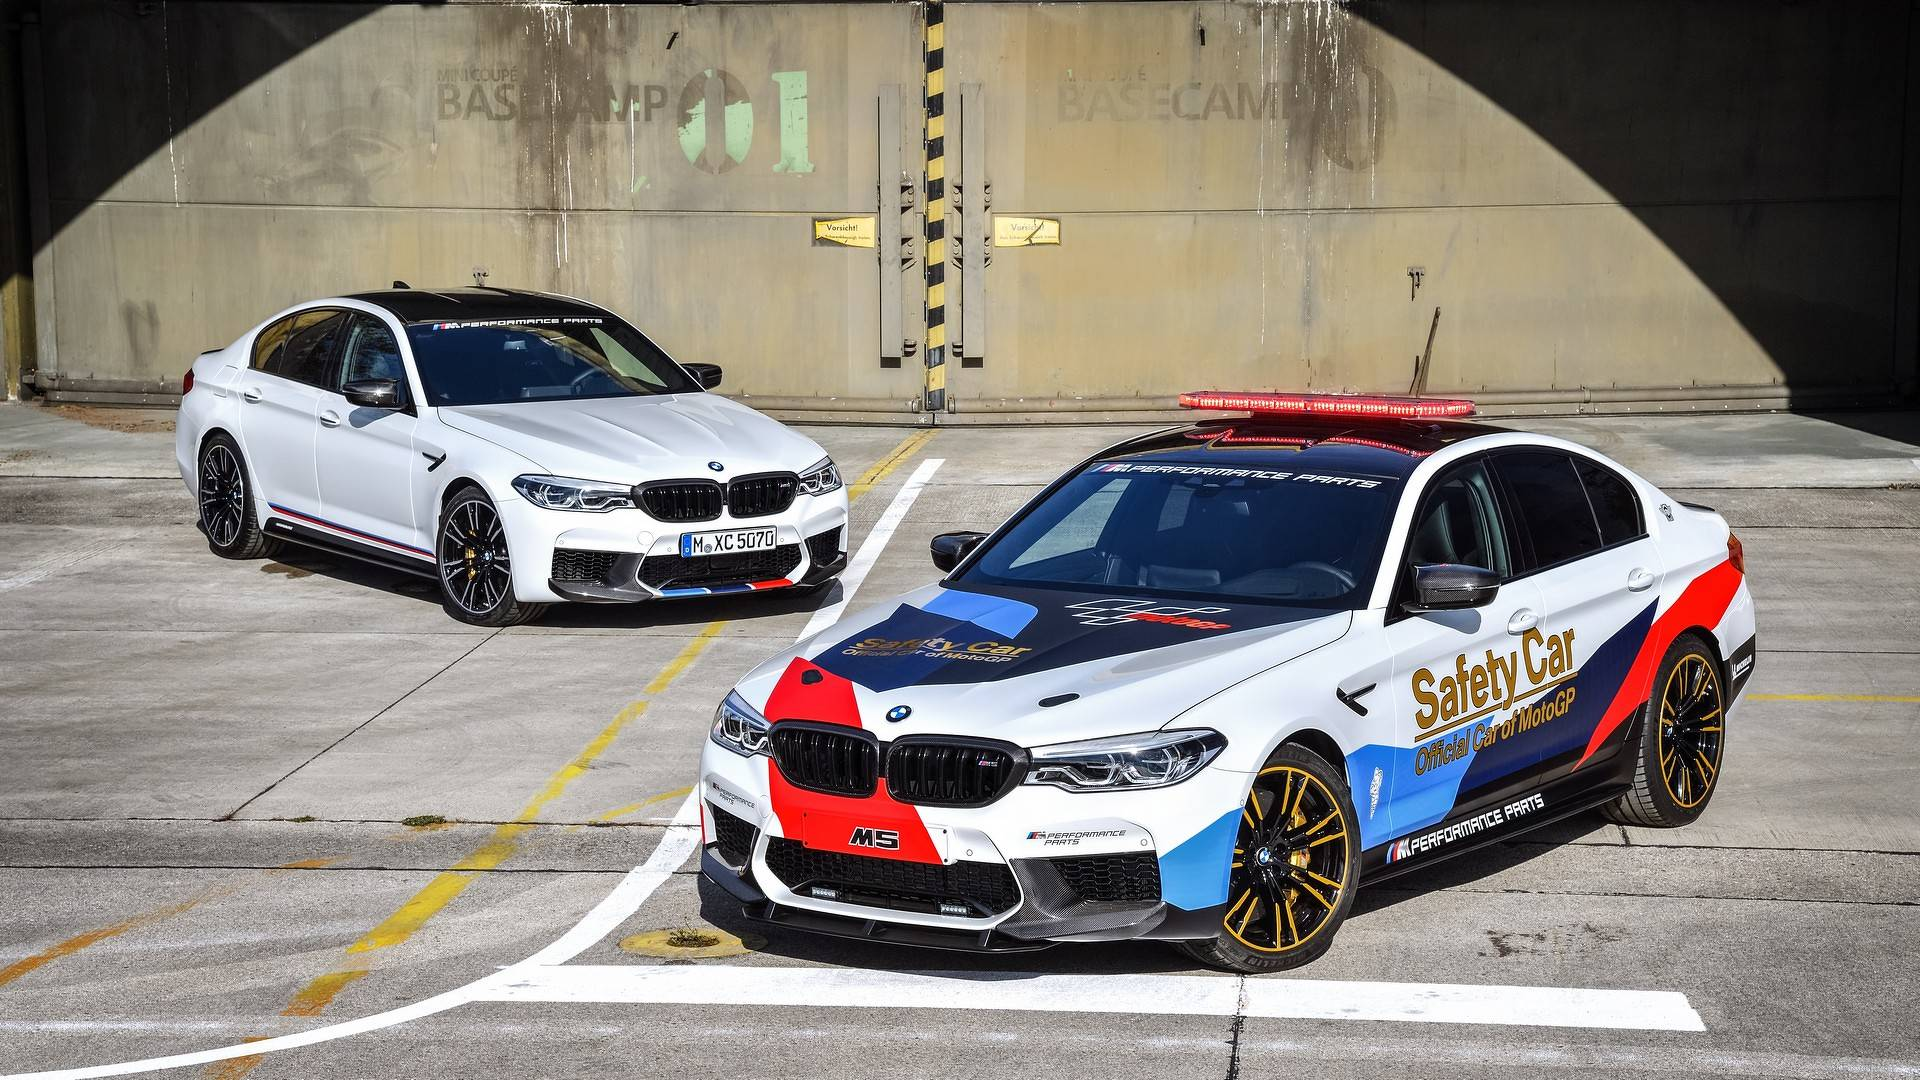 bmw-m5-motogp-safety-car (15)